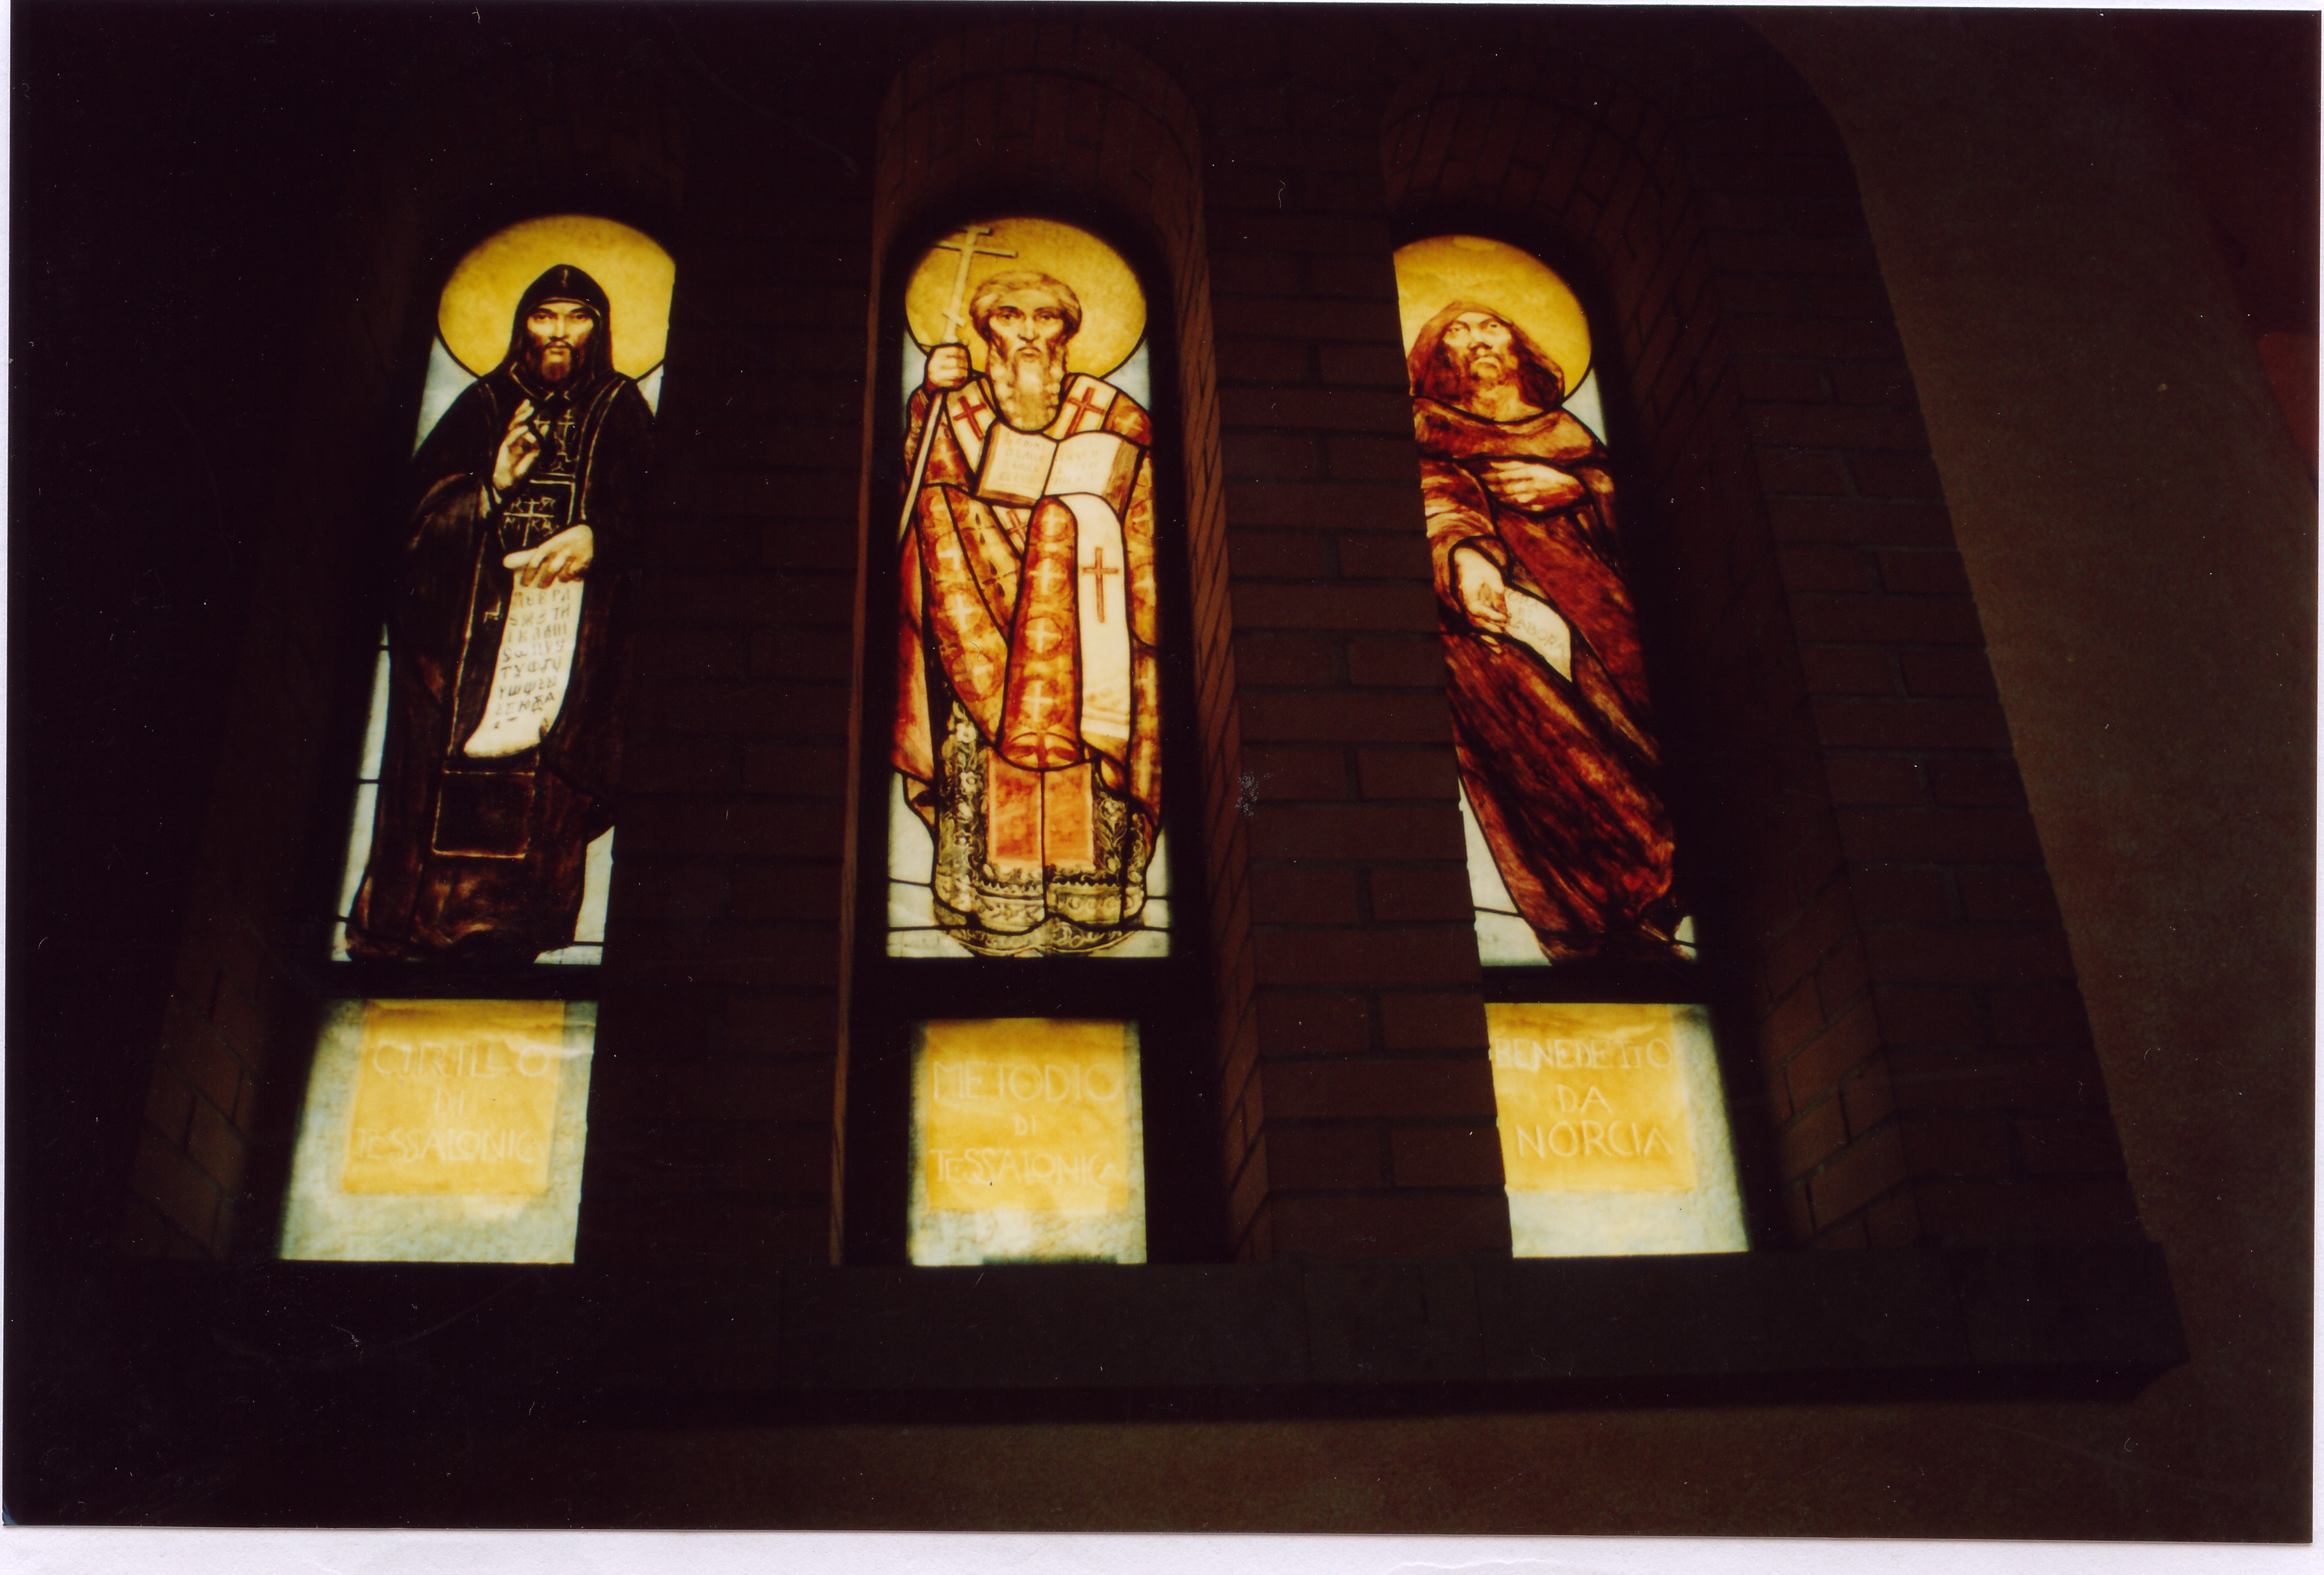 Auschwitz Church stained glasses